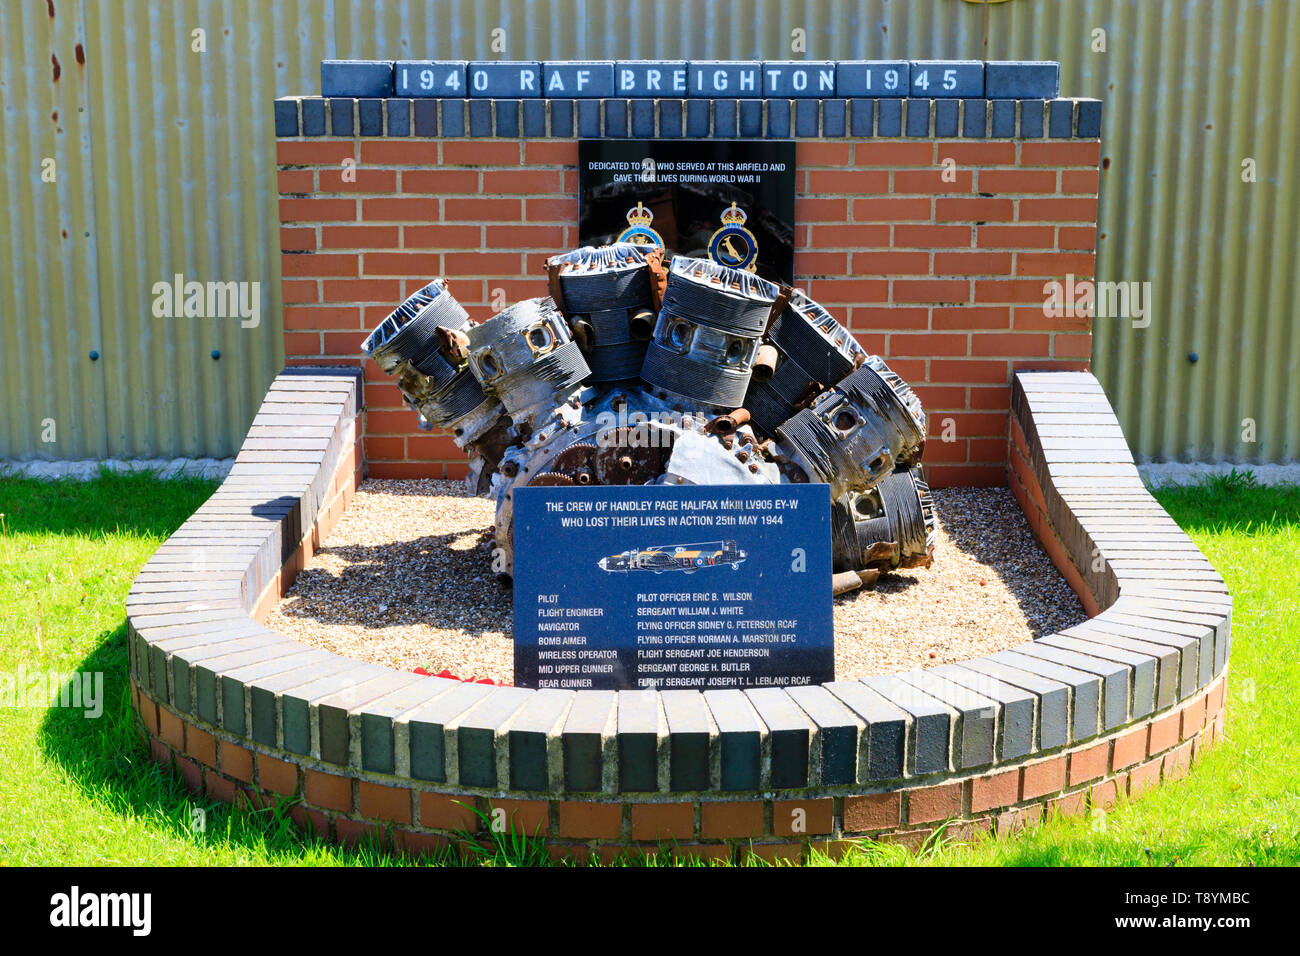 World war 2 memorial dedicated to the crew of Handley Page Halifax bomber LV905 EY-W which crashed on 25th May 1945 with the loss of all crew. Former  - Stock Image